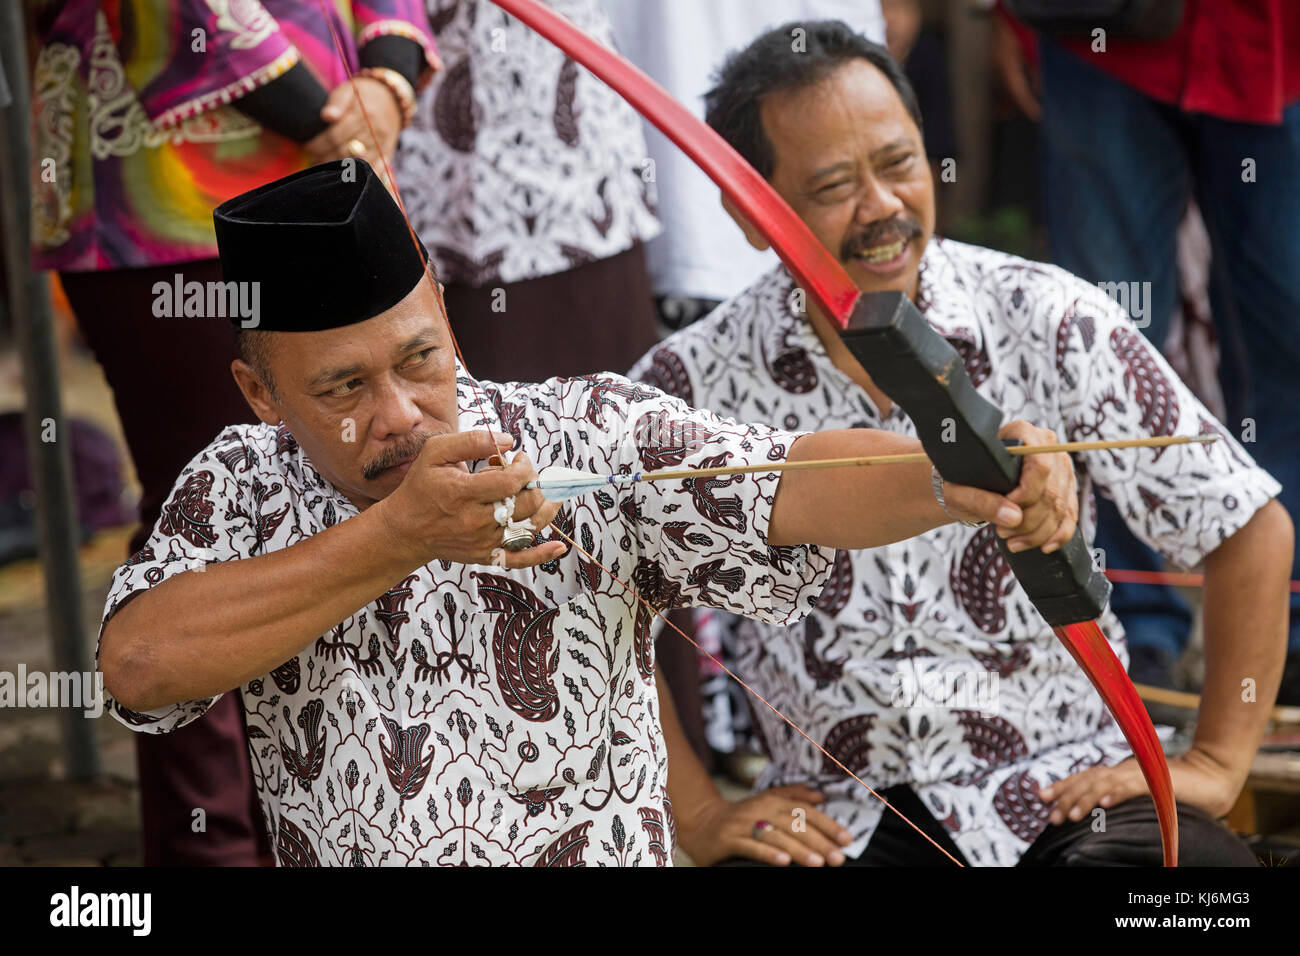 Mayor of the city Yogyakarta practicing Jemparingan / traditional Javanese archery by shooting bow and arrows, Java, - Stock Image